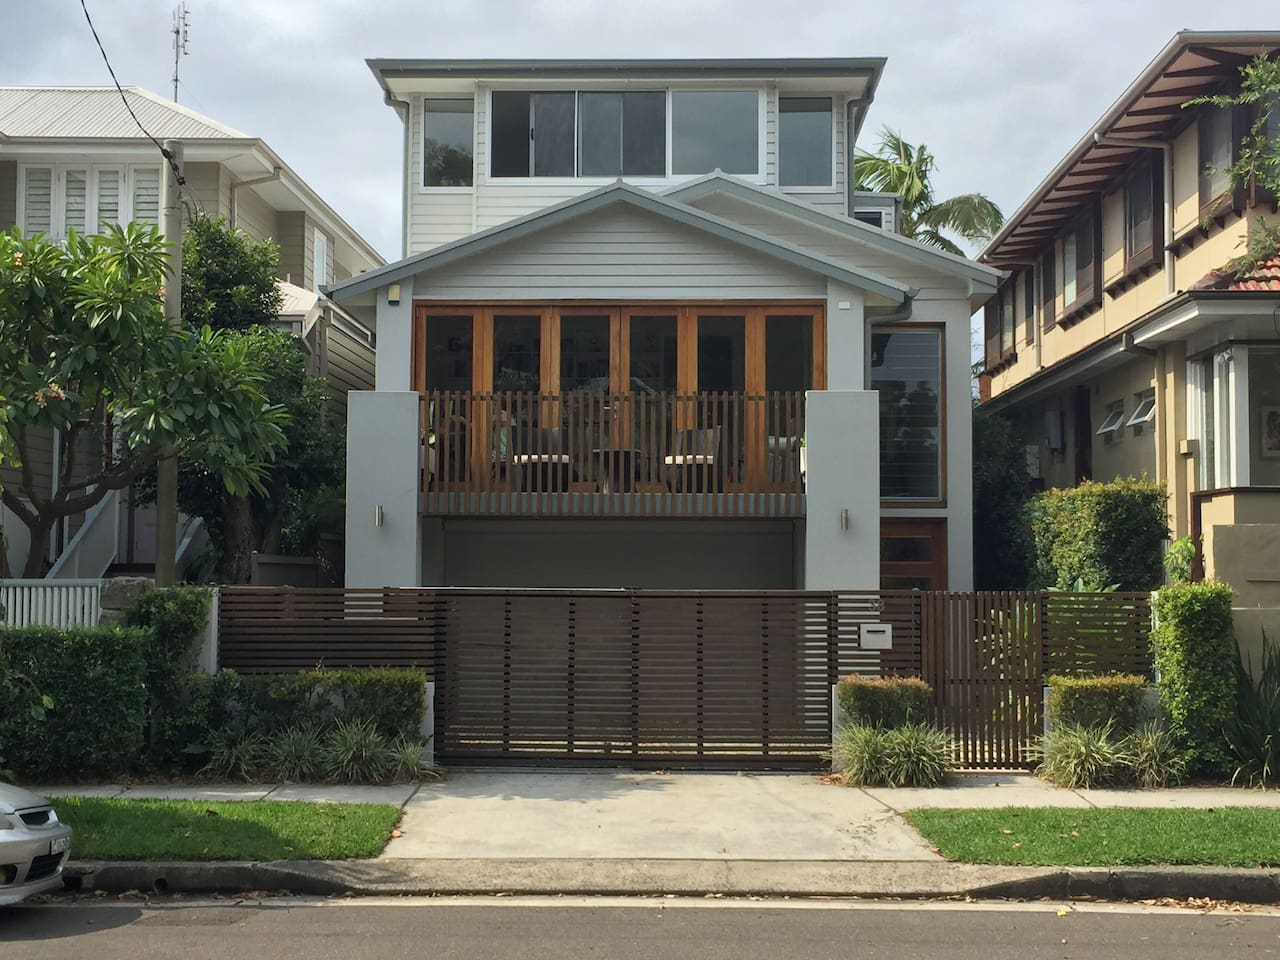 Stunning new home with off street parking.